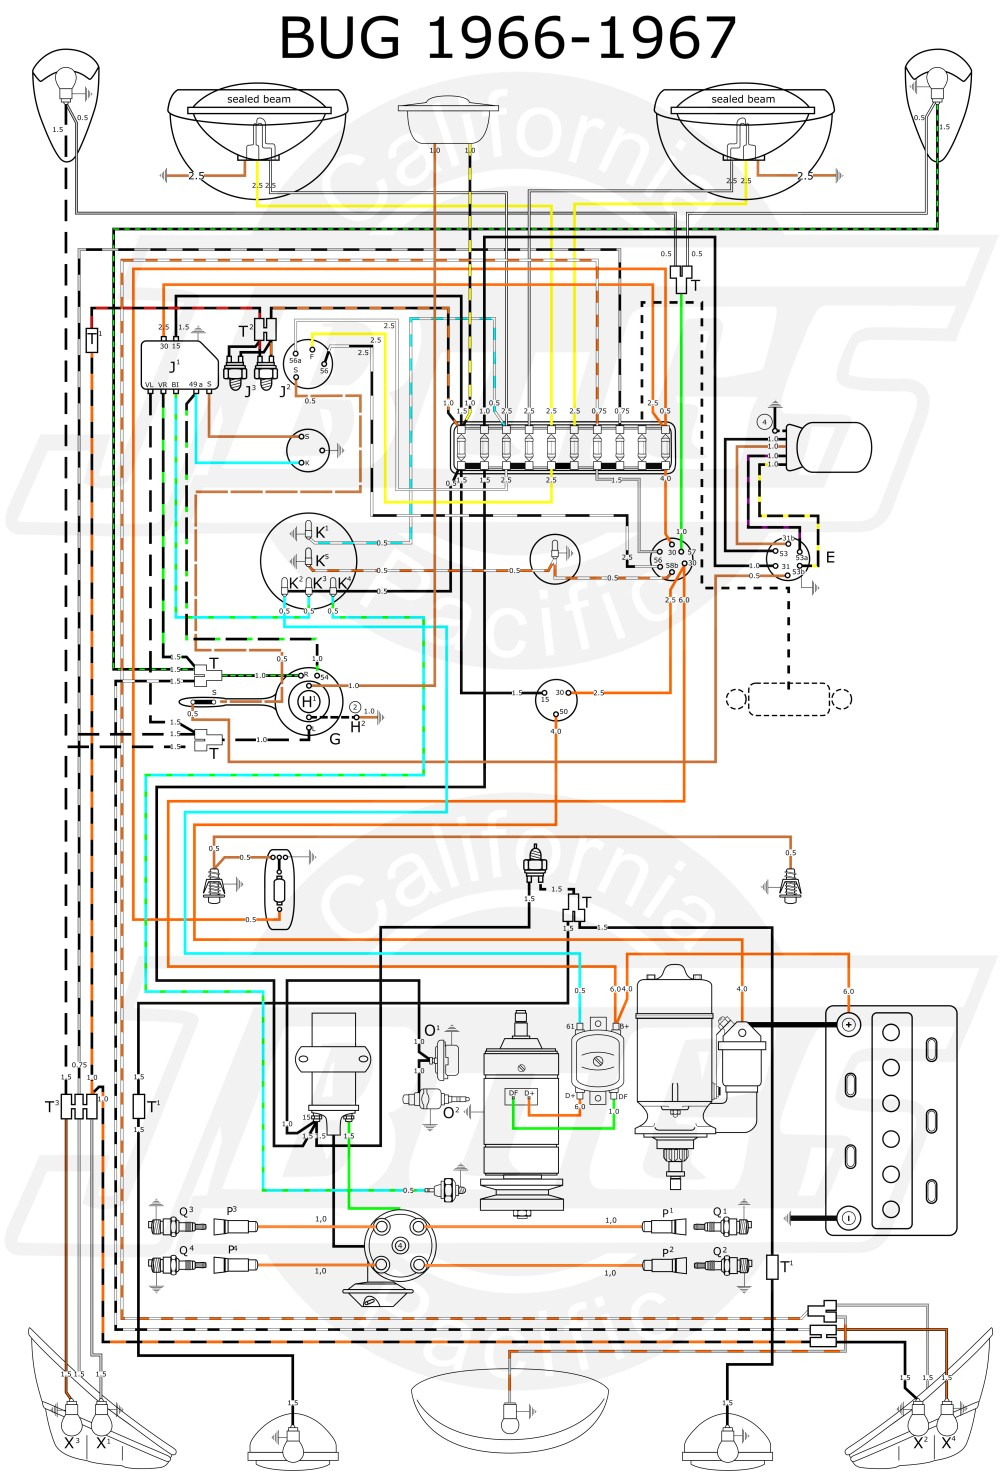 medium resolution of 2007 volkswagen rabbit wiring diagram worksheet and wiring diagram u2022 rh bookinc co 2007 vw rabbit